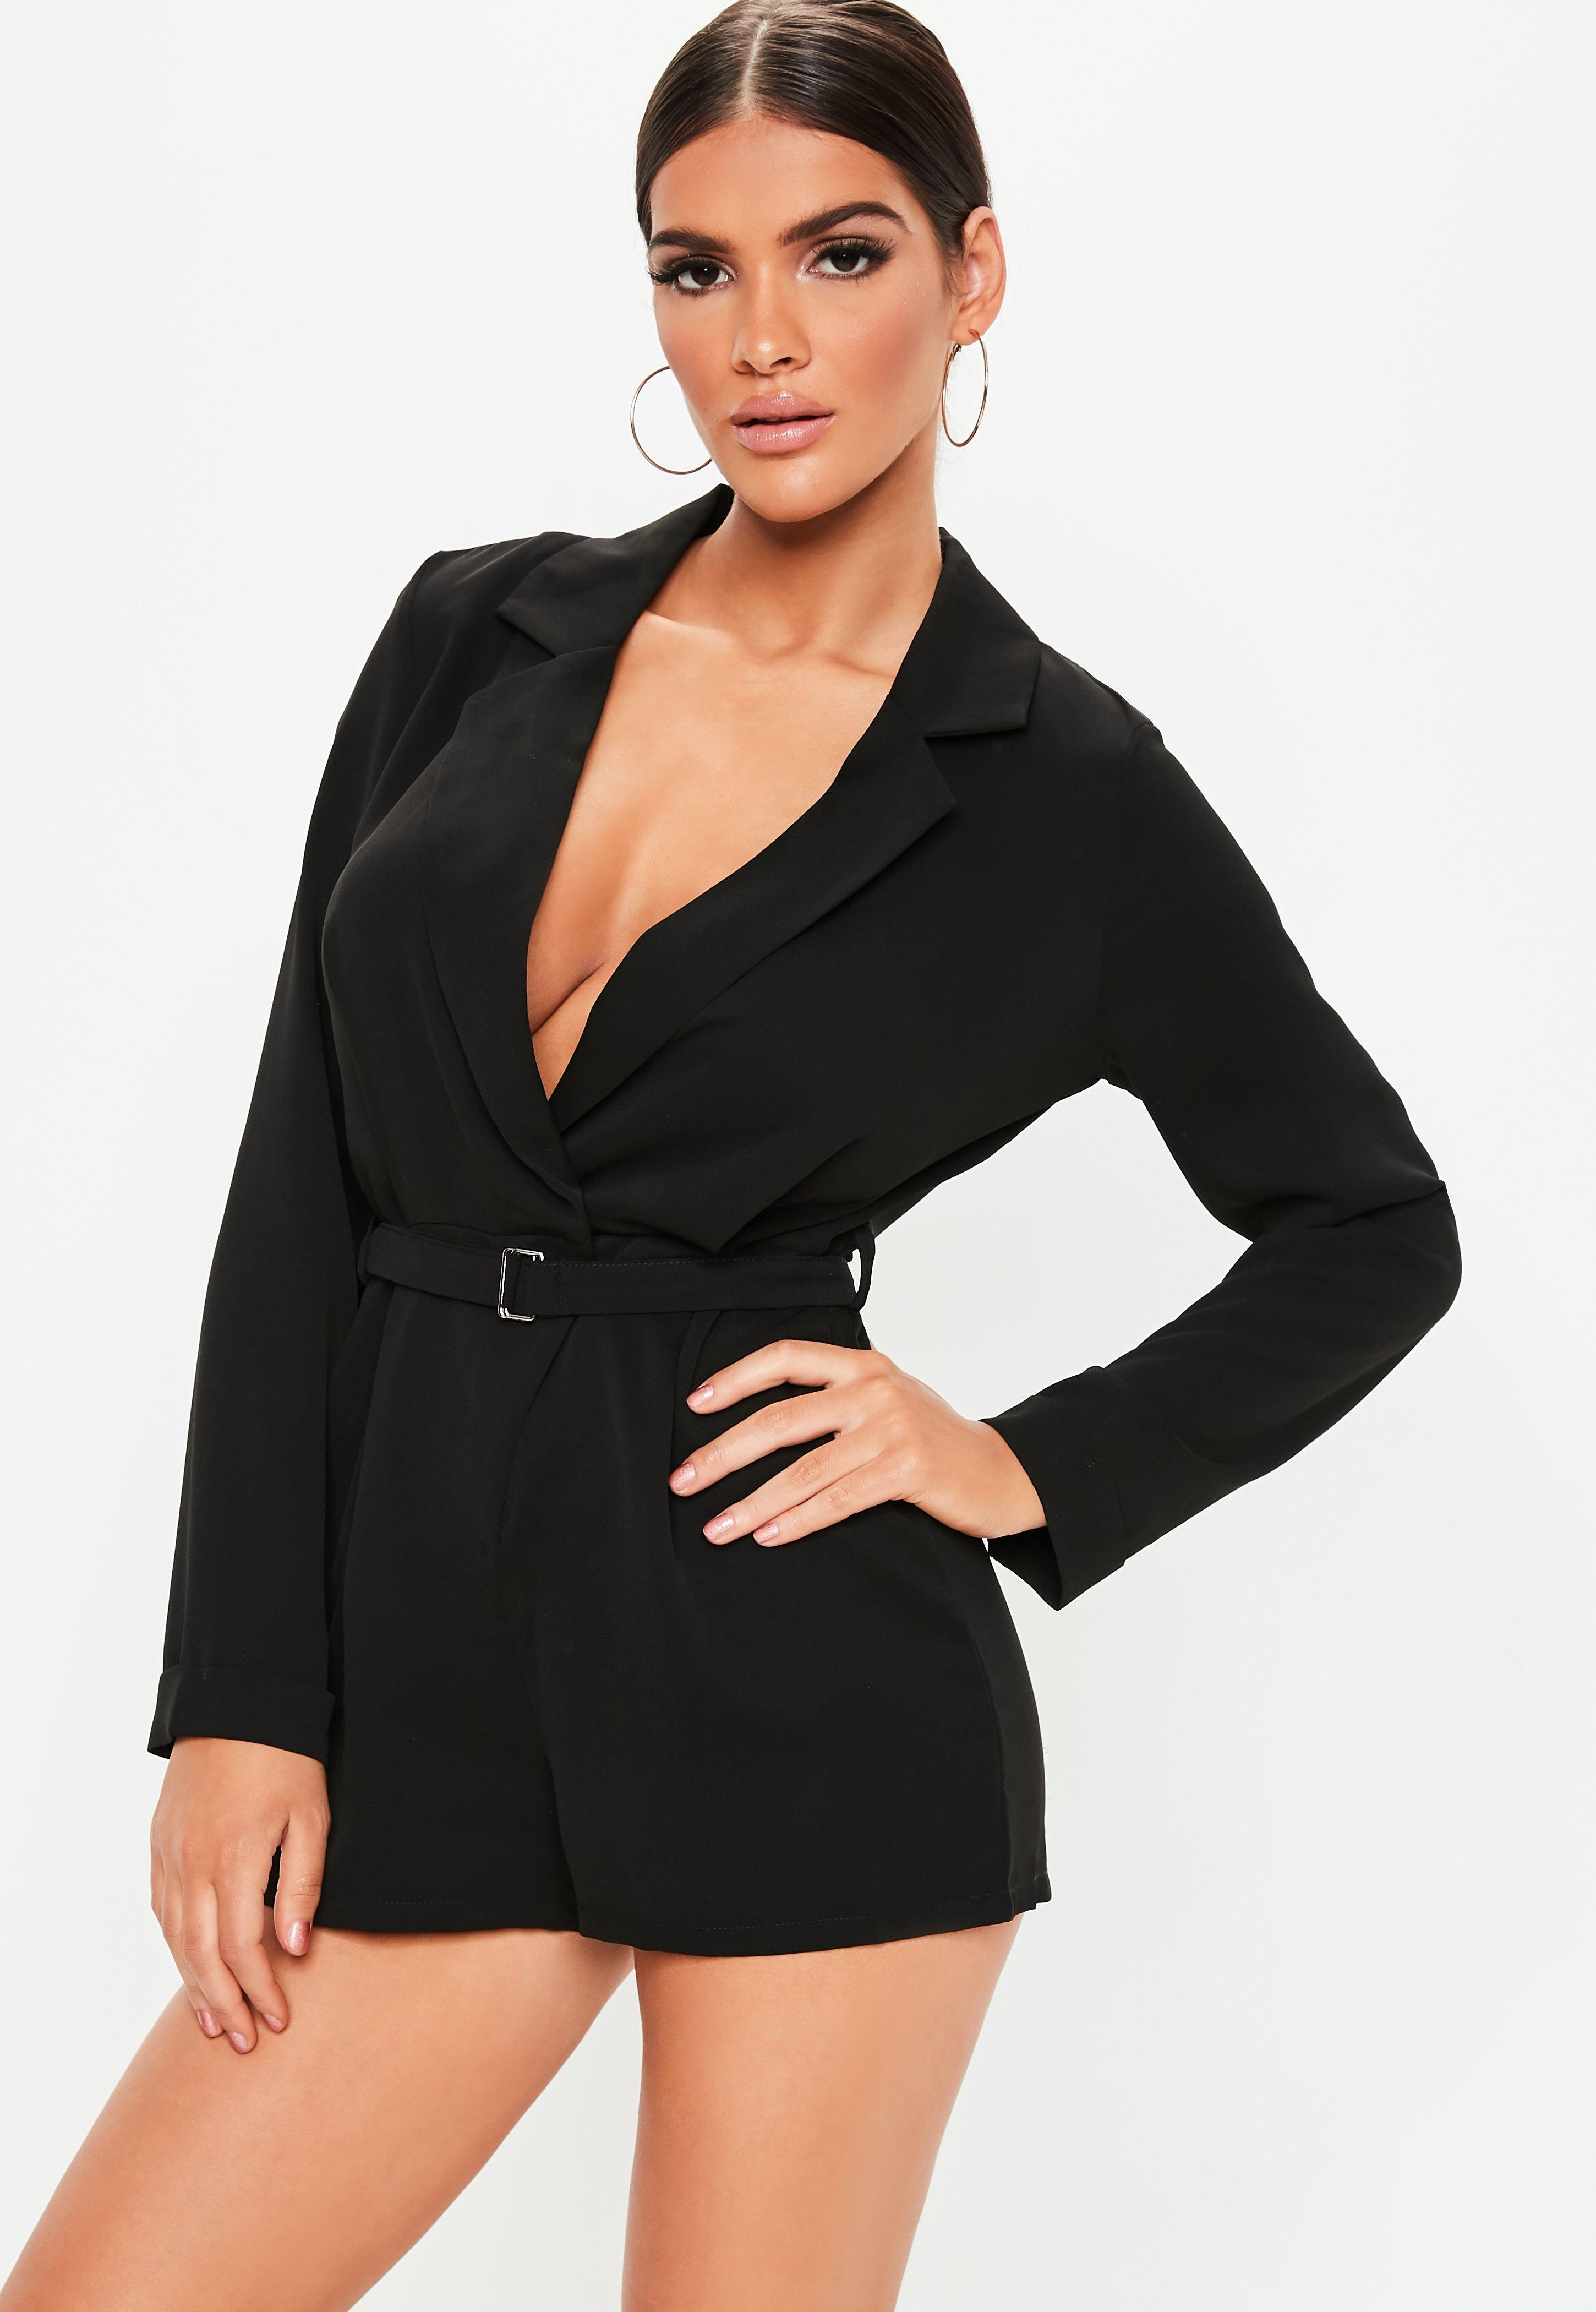 89b3d5e42e0 Lyst - Missguided Tall Black Plunge Tuxedo Playsuit in Black